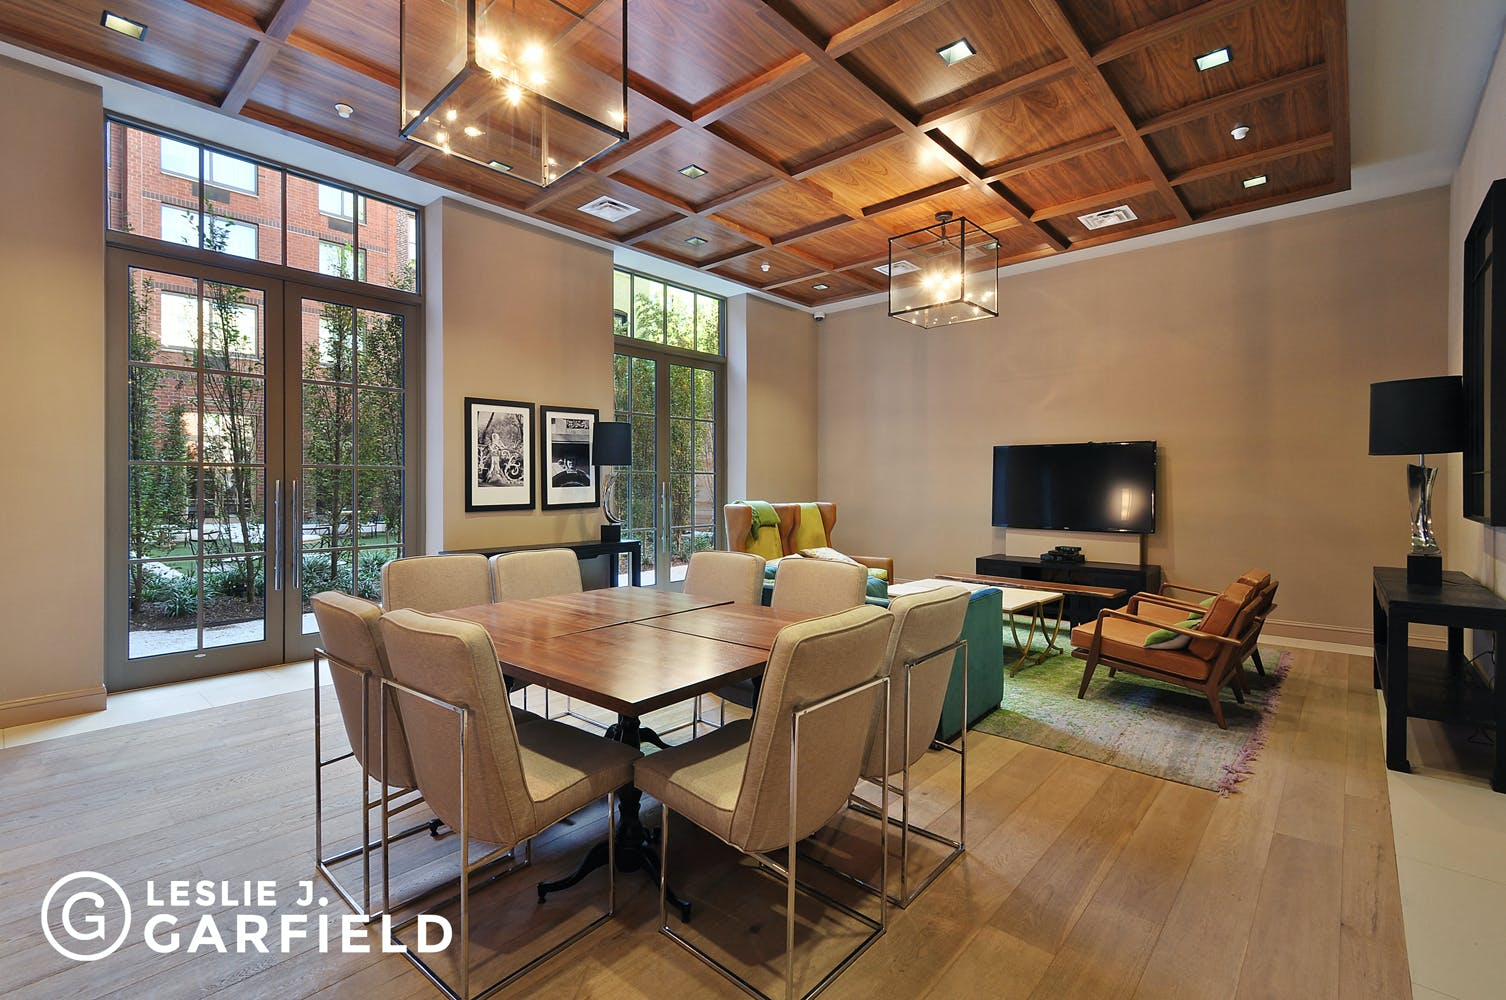 110 West 88th Street - bf2cf381-b64b-4c39-840b-dee8116d861a - New York City Townhouse Real Estate